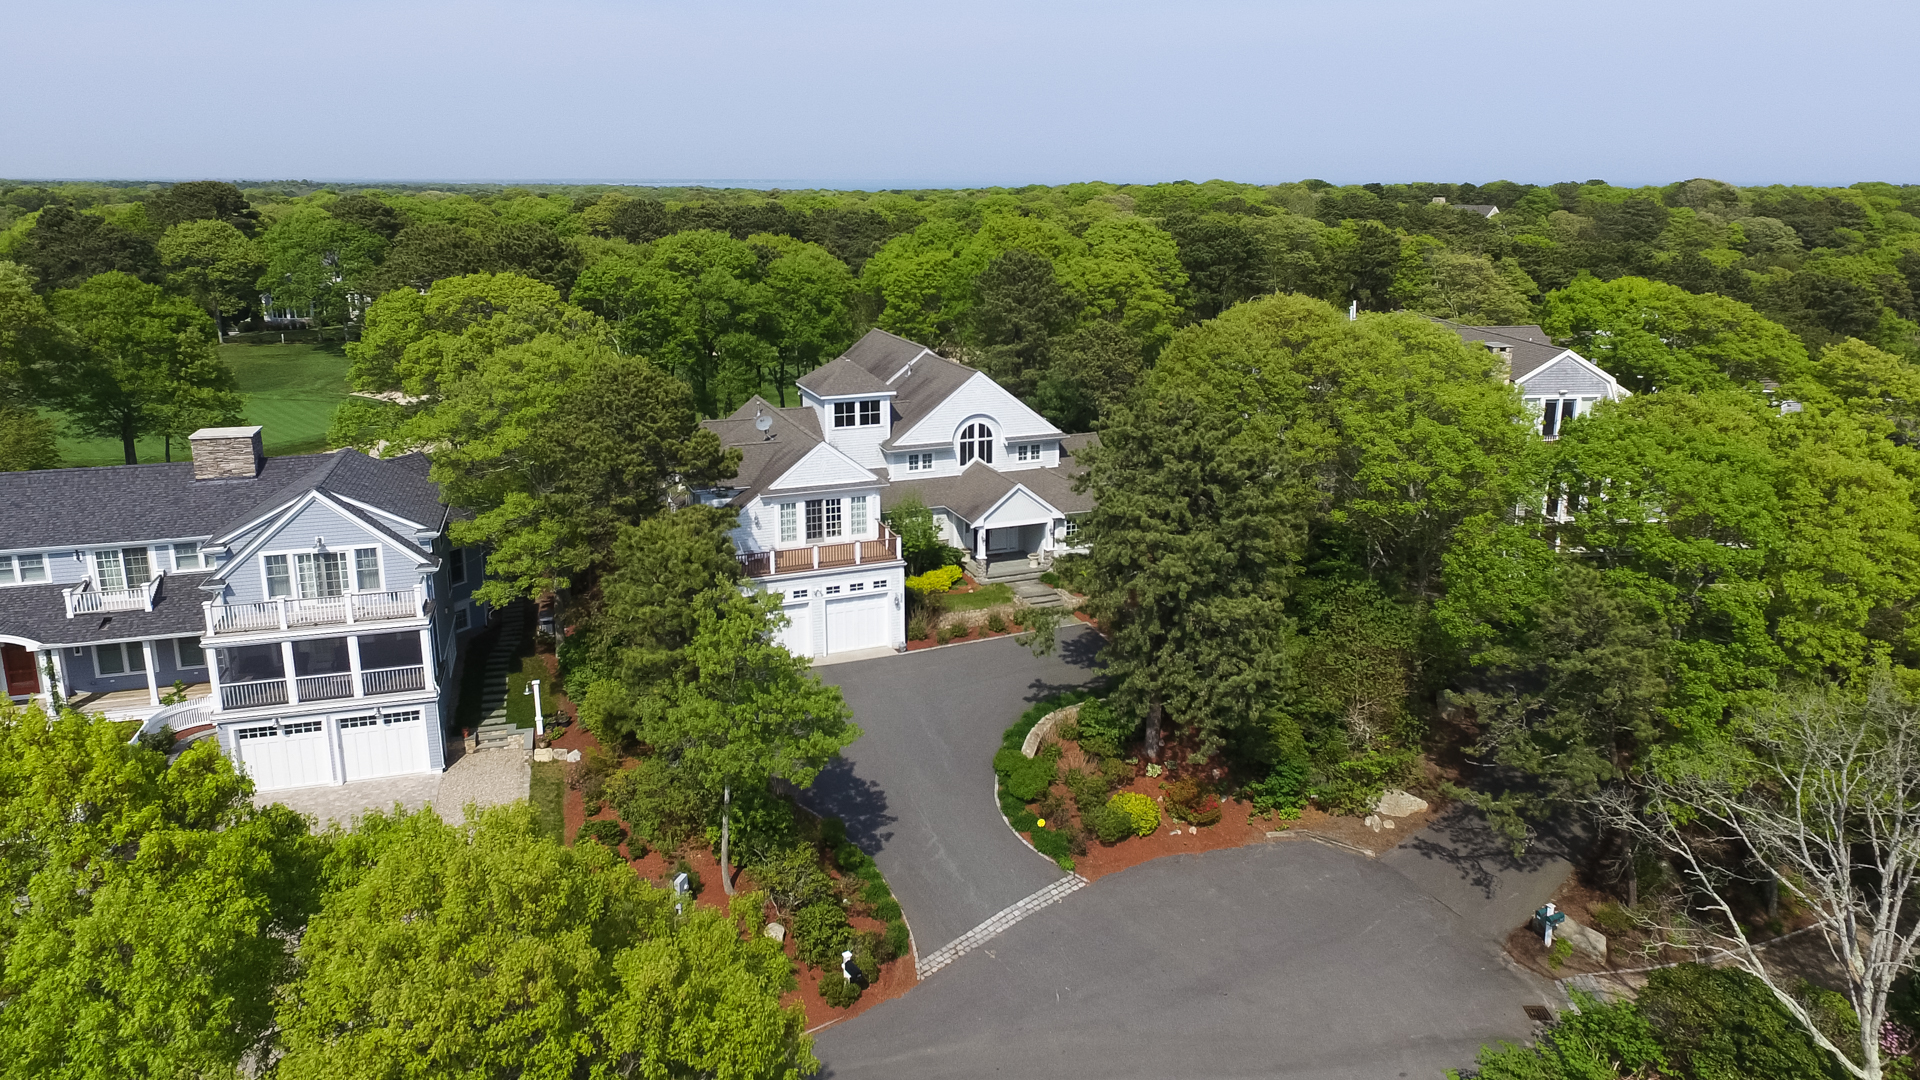 Single Family Home for Sale at EXQUISITE GOLF FRONT 236 Glenneagle Drive New Seabury, 02649 United States